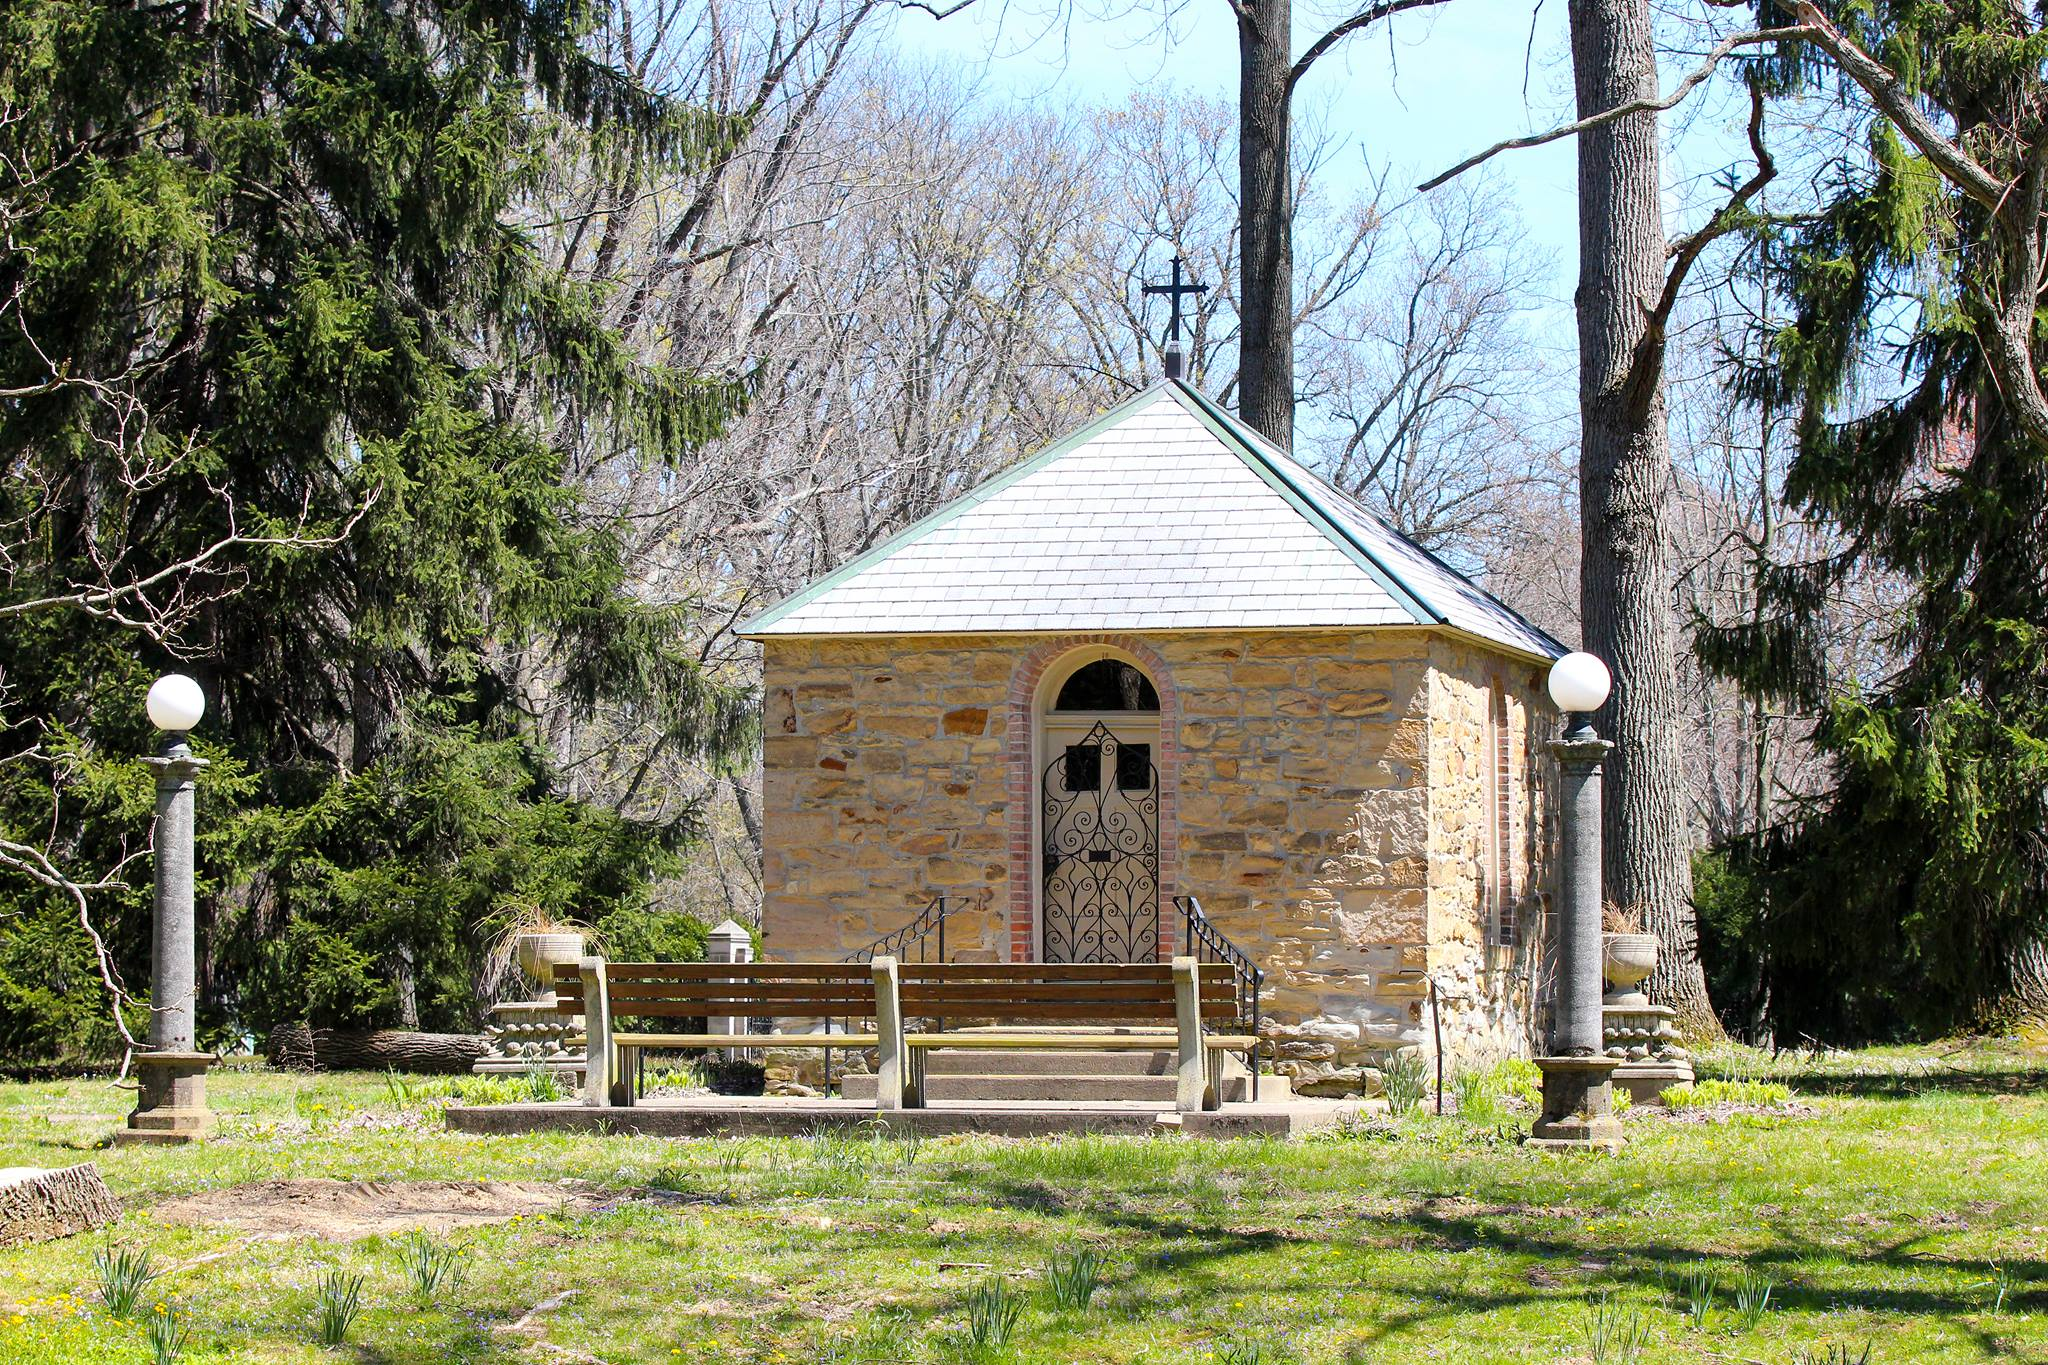 The St. Anne's Shell Chapel In Indiana Is Bizarrely Beautiful And Its History Is Fascinating